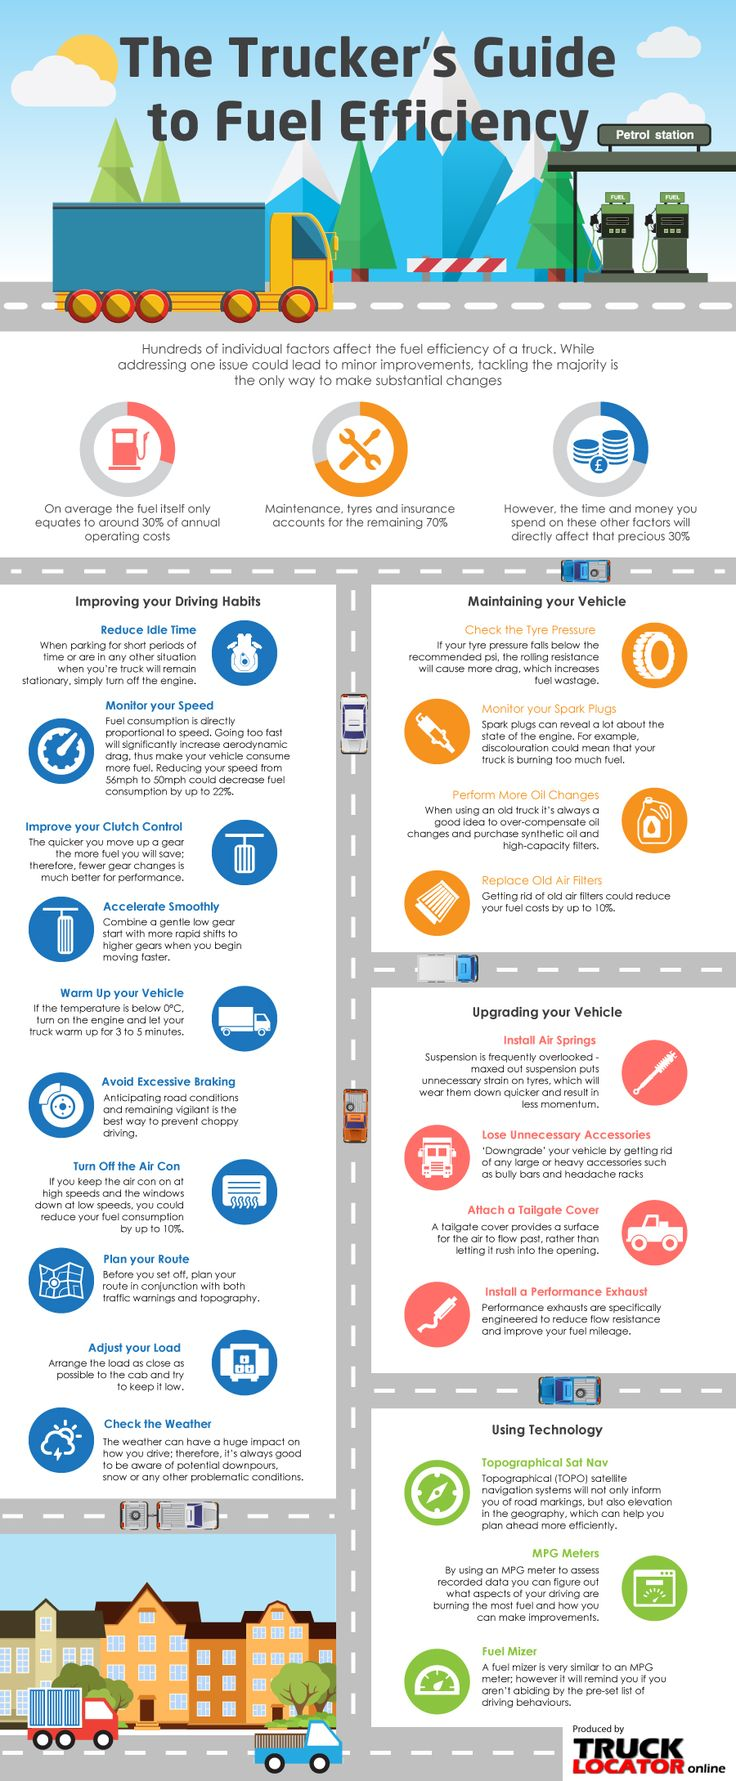 The Trucker's Guide to Fuel Efficiency - Do you fancy an infographic? There are a lot of them online, but if you want your own please visit http://www.linfografico.com/prezzi/ Online girano molte infografiche, se ne vuoi realizzare una tutta tua visita http://www.linfografico.com/prezzi/